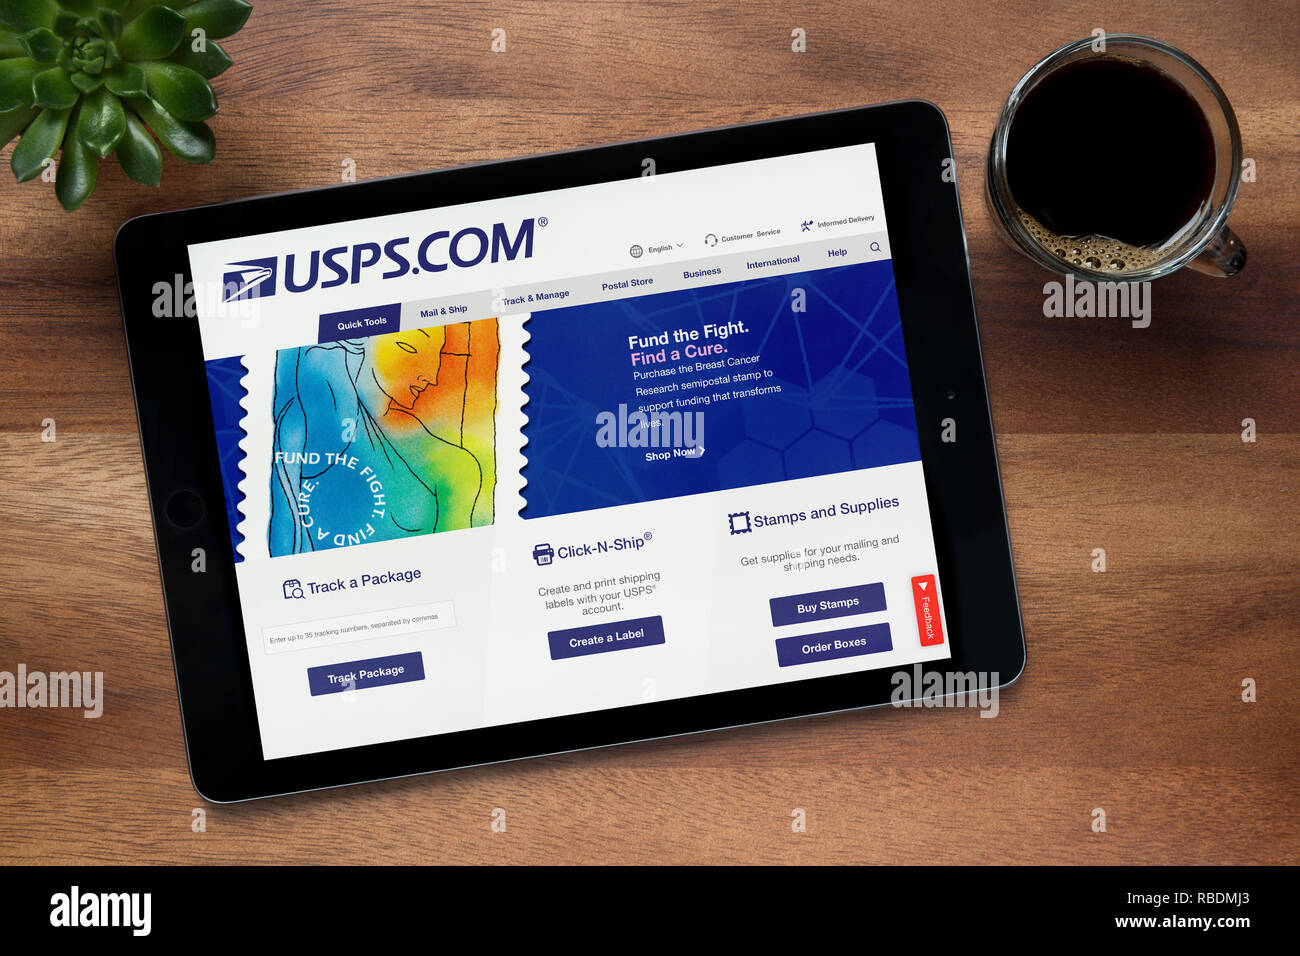 The website of USPS (United States Postal Service) is seen on an iPad tablet, resting on a wooden table (Editorial use only). - Stock Image